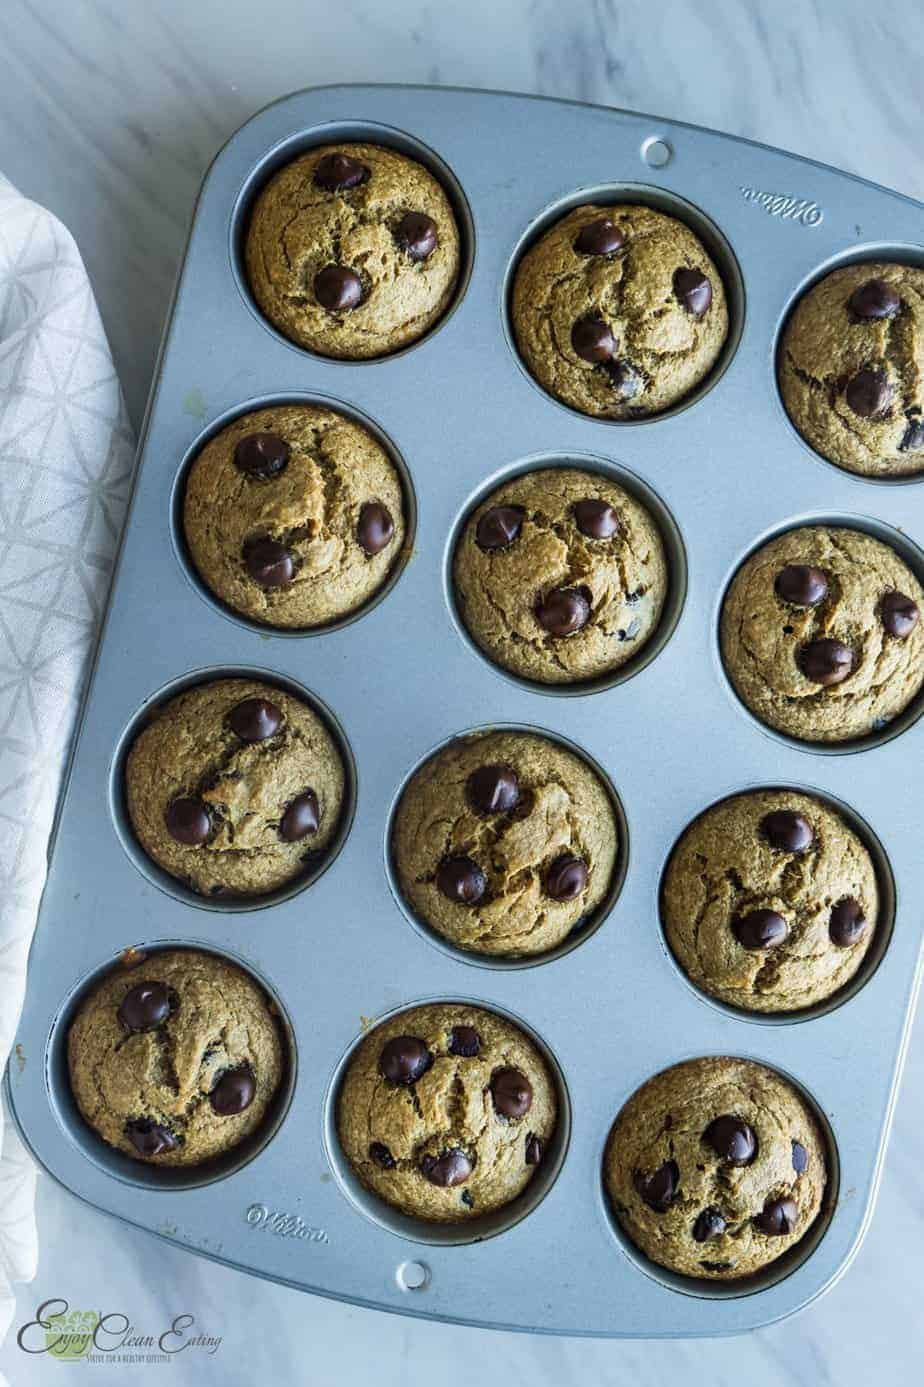 after baking the oat flour banana muffins let it cool for 5 minutes